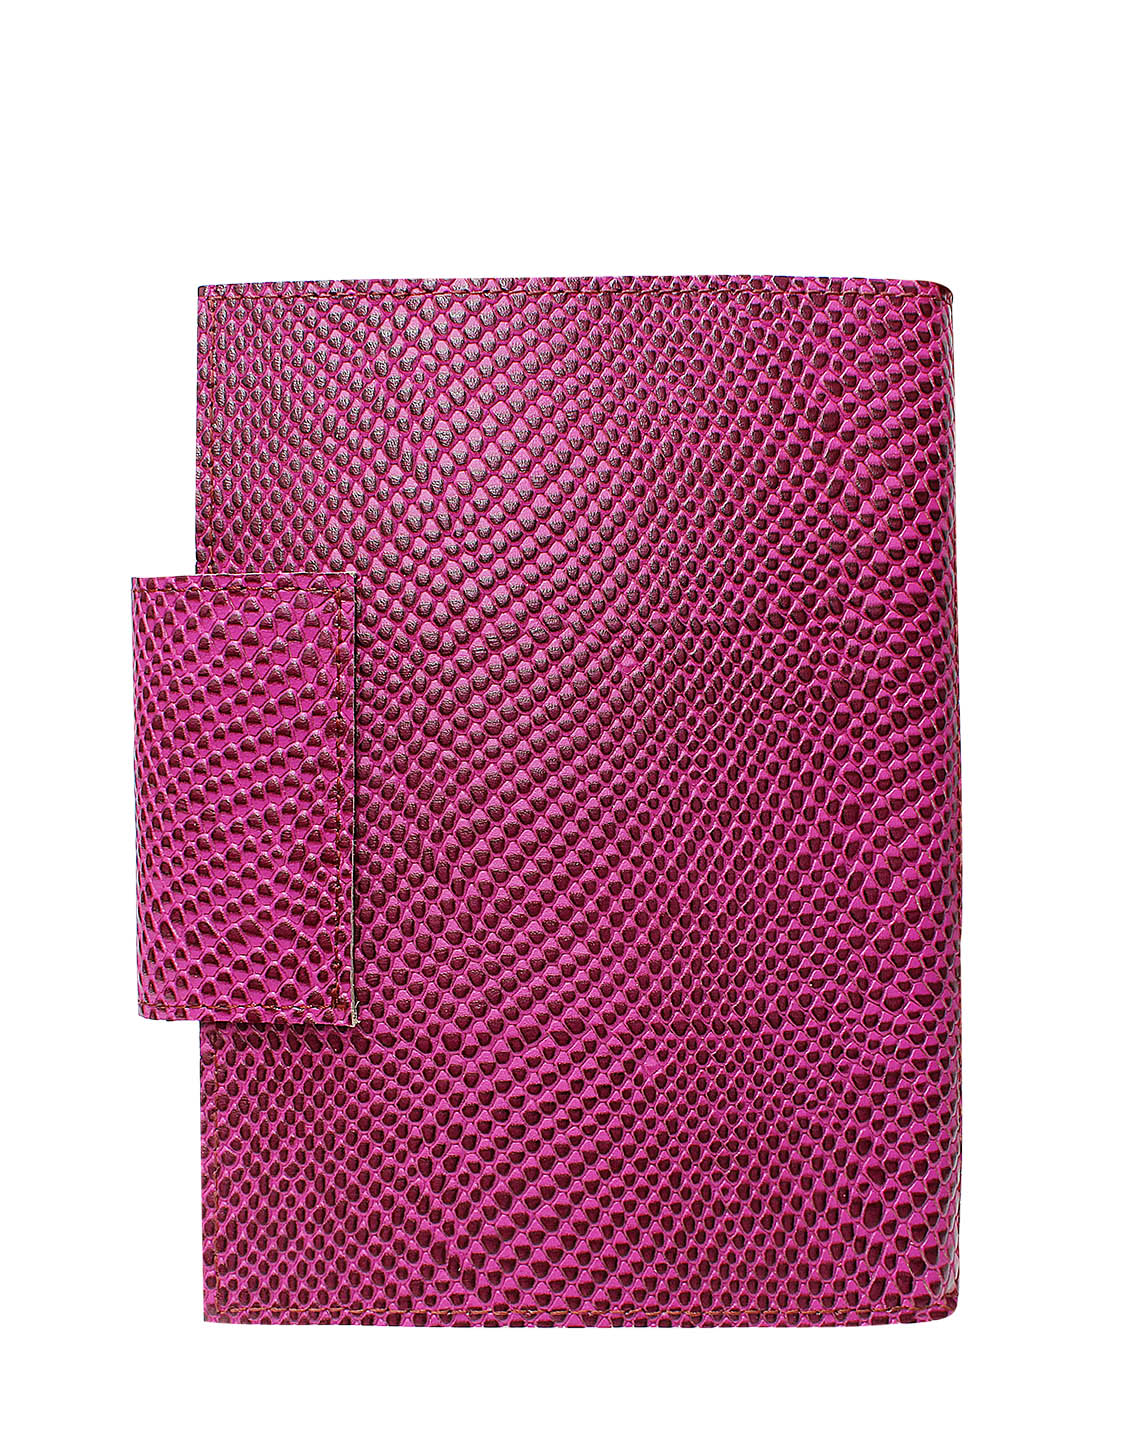 Agenda AG-0131 Color Fucsia